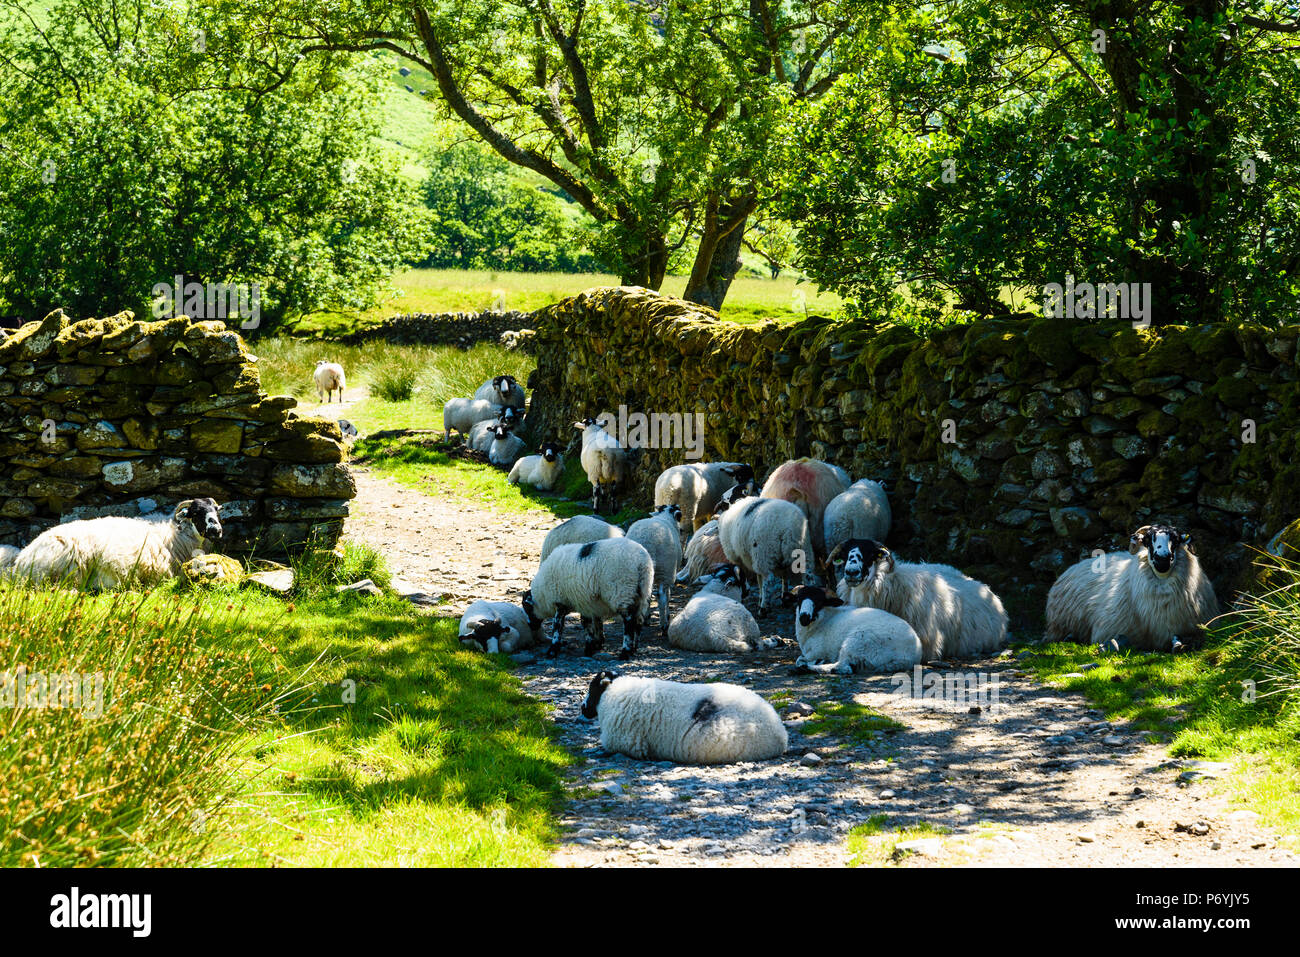 Sheep seek shade on a hot day in Kentmere in the Lake District - Stock Image